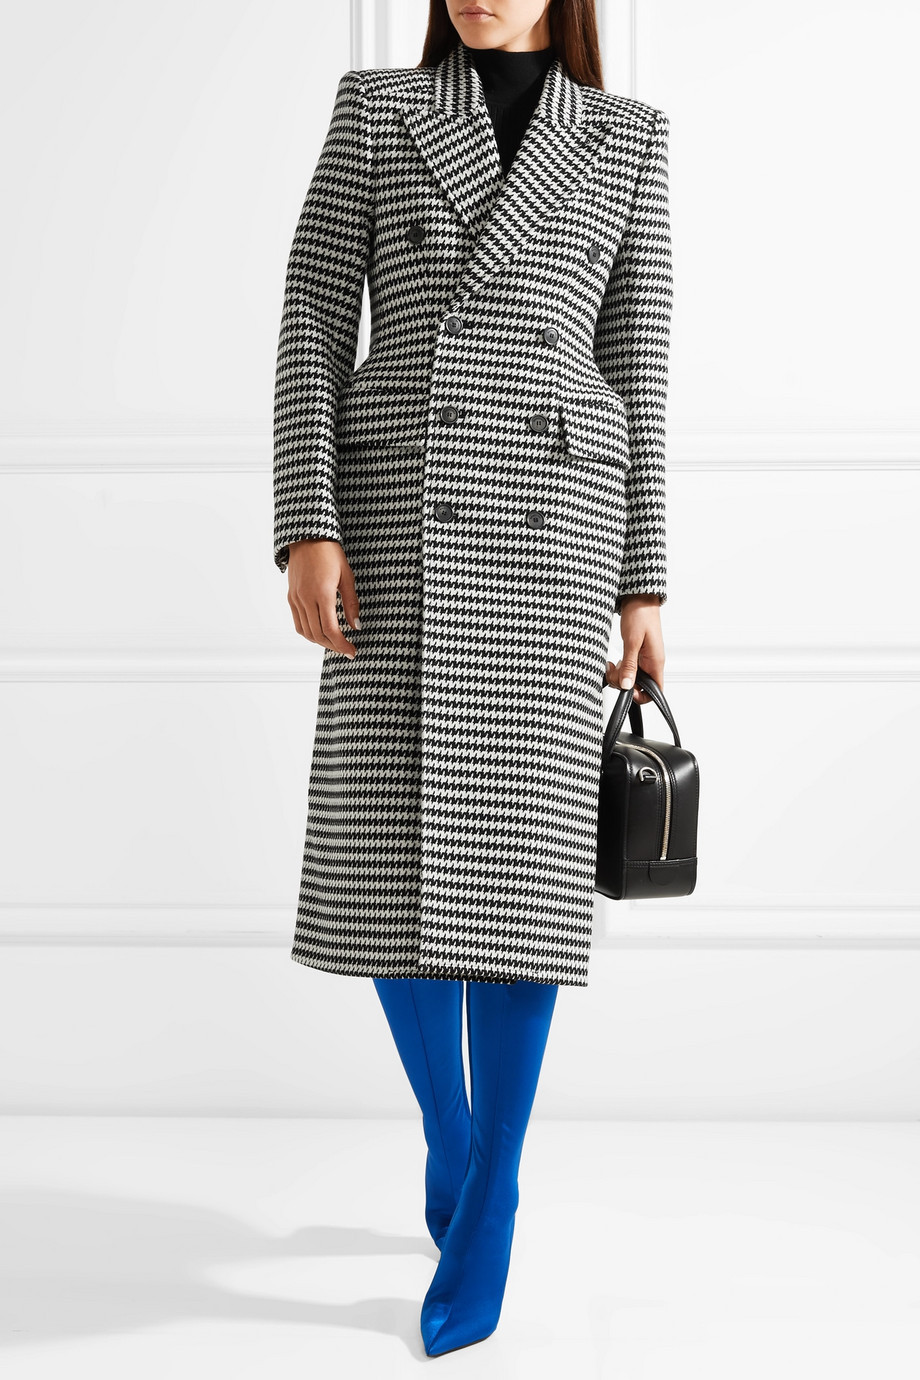 Balenciaga Double-breasted houndstooth wool-blend coat with internal shoulder pads $3,400